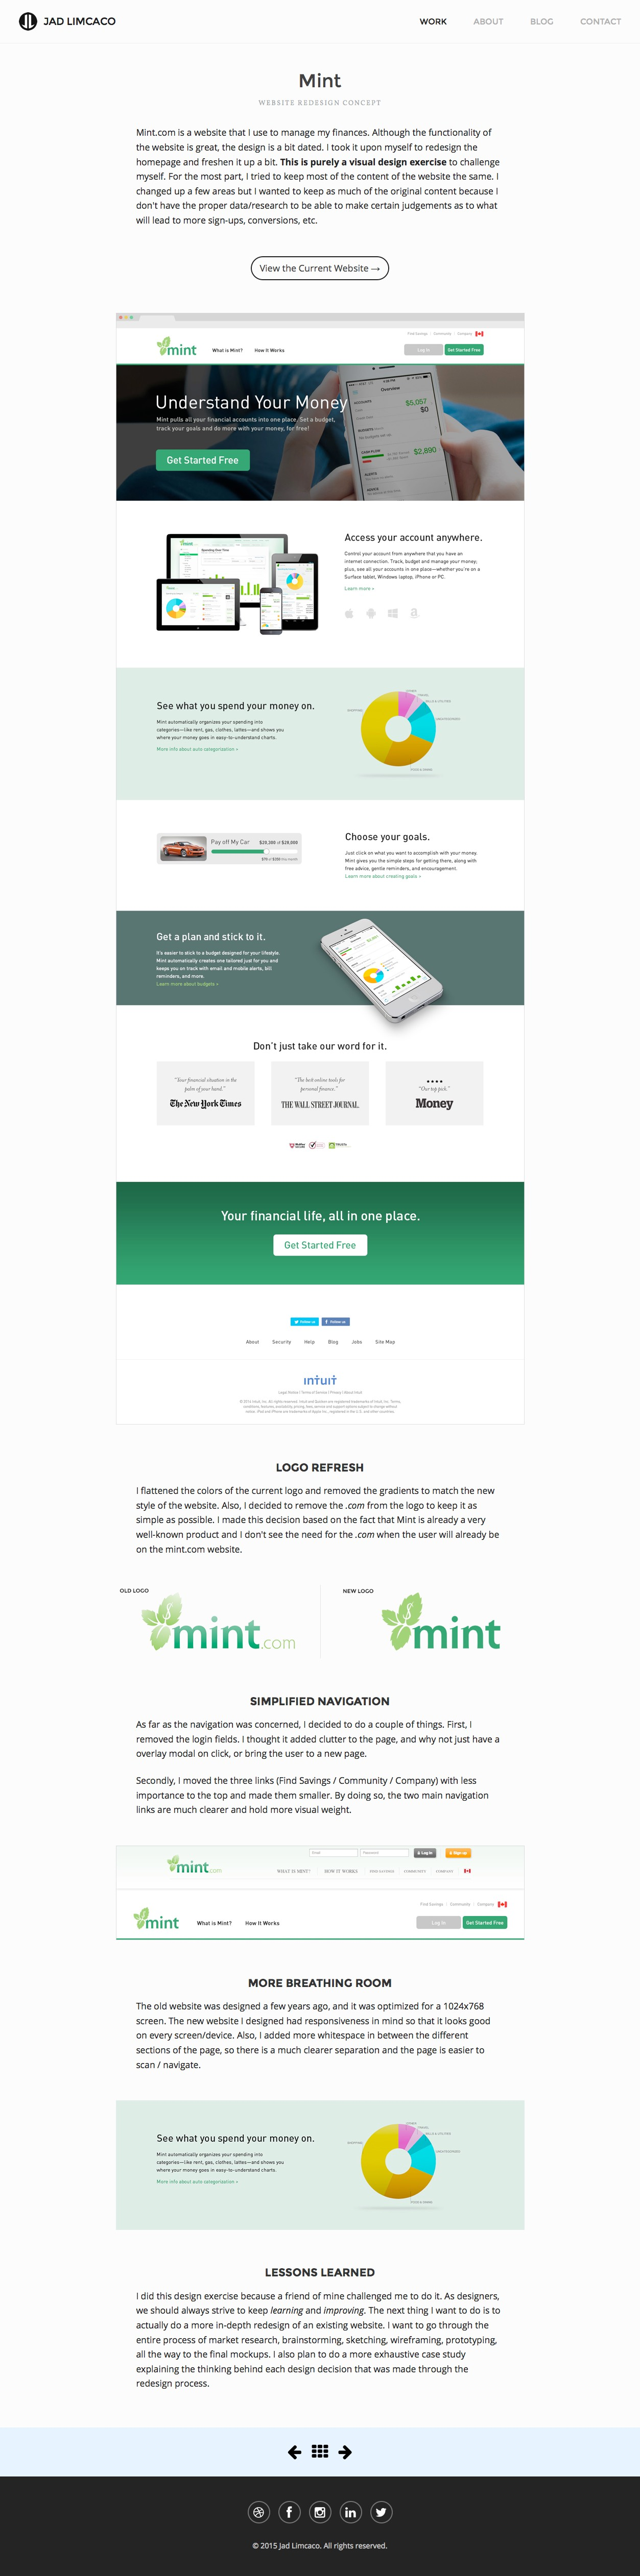 The Project: Mint Website Redesign Concept on Jad Limcaco's portfolio website